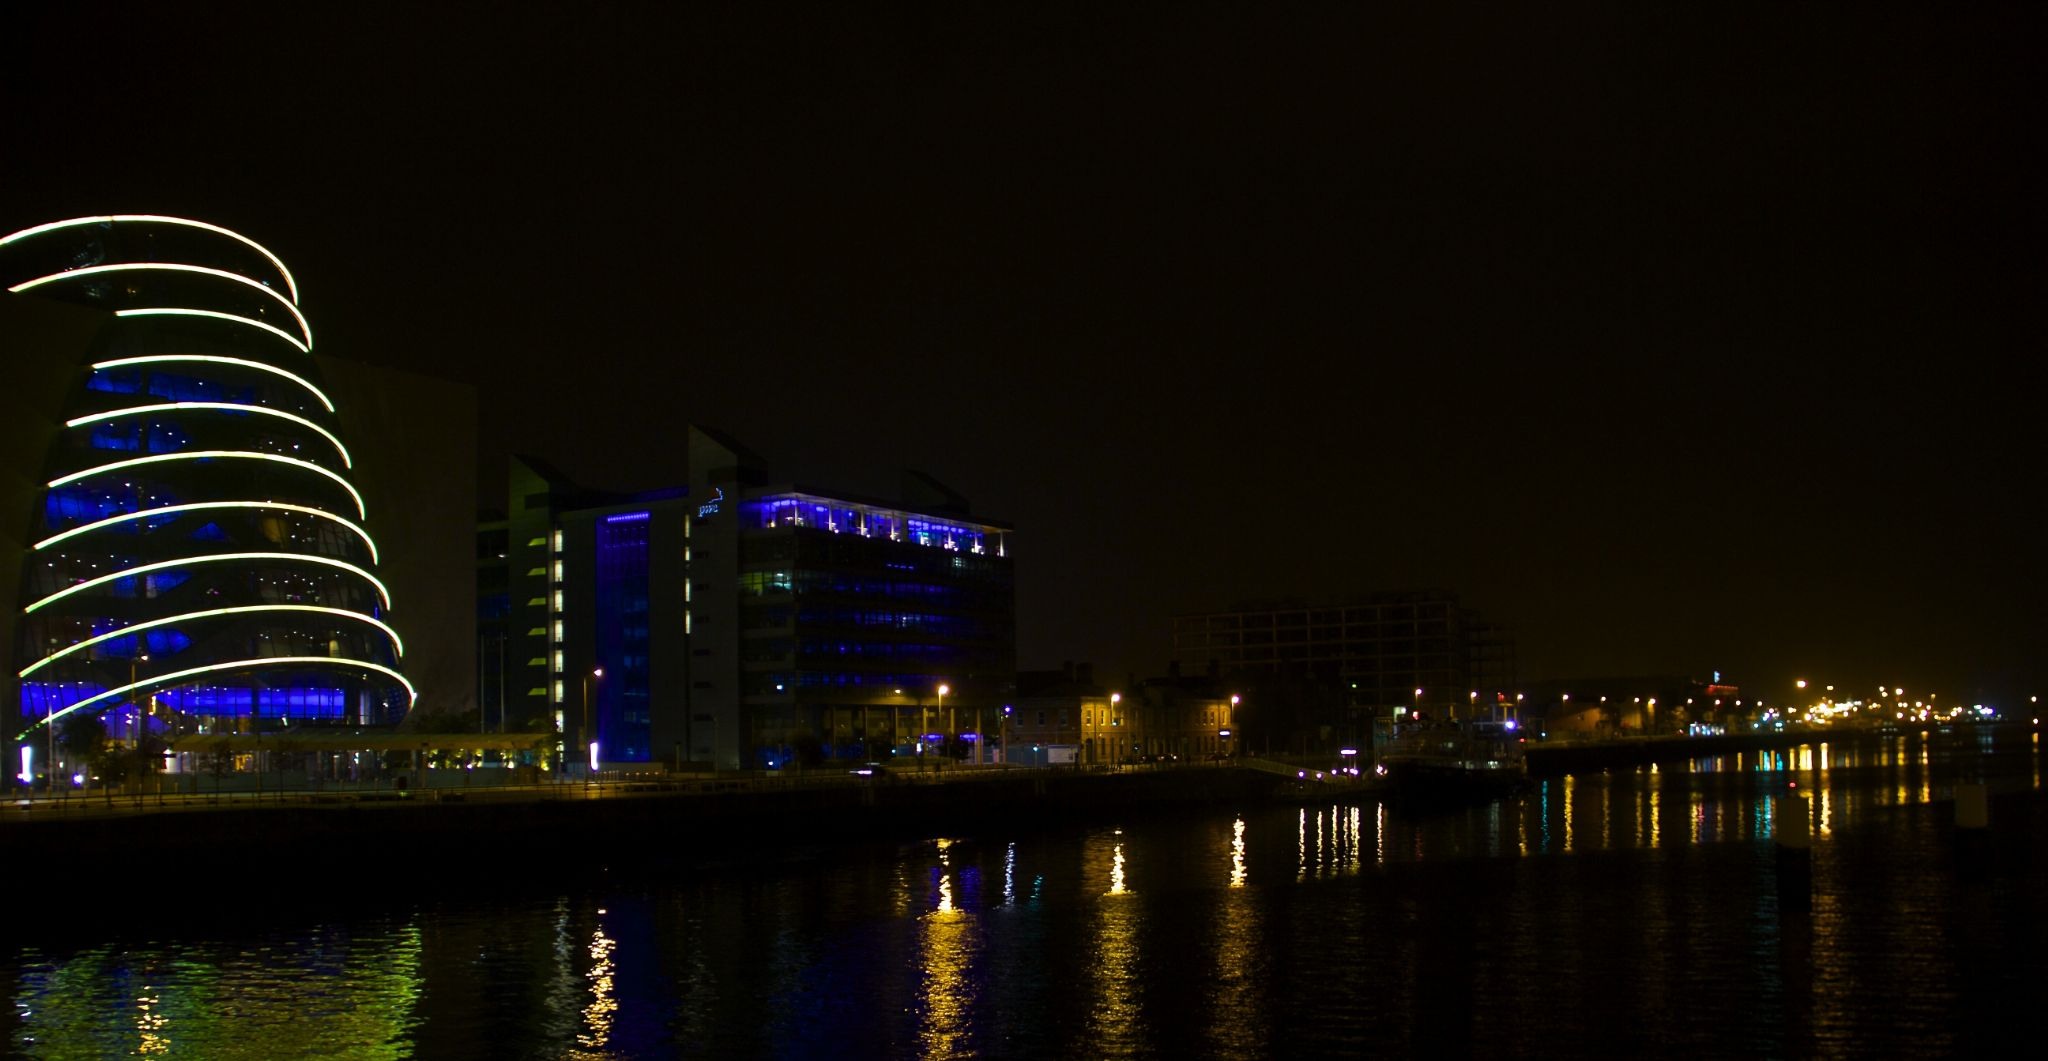 Dublin Docklands at Night by Peter Purdue